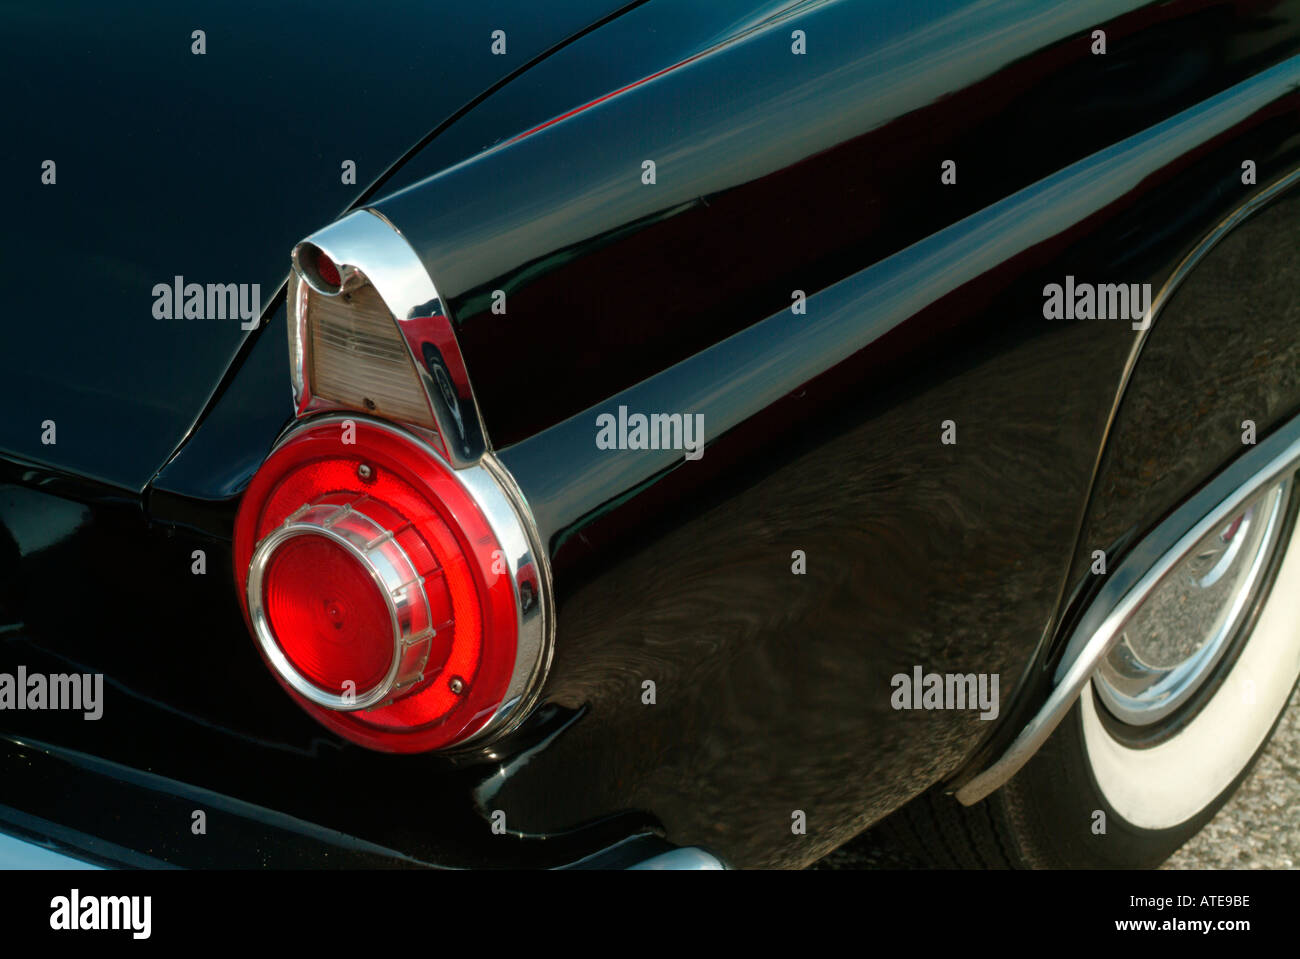 detail of an antique car fender and tail light - Stock Image